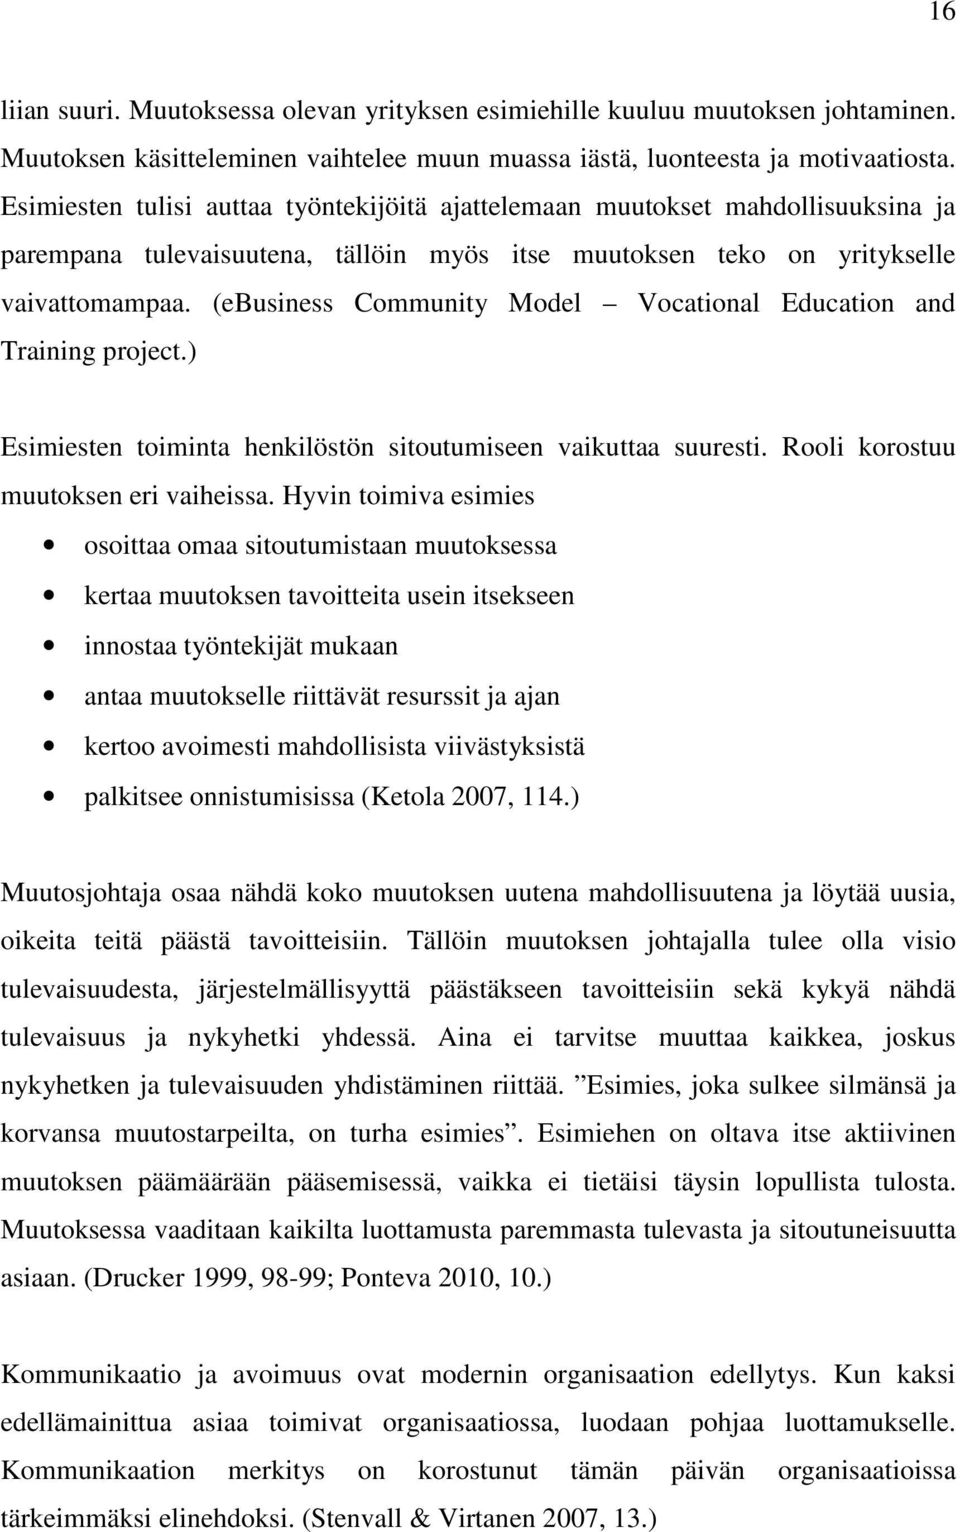 (ebusiness Community Model Vocational Education and Training project.) Esimiesten toiminta henkilöstön sitoutumiseen vaikuttaa suuresti. Rooli korostuu muutoksen eri vaiheissa.